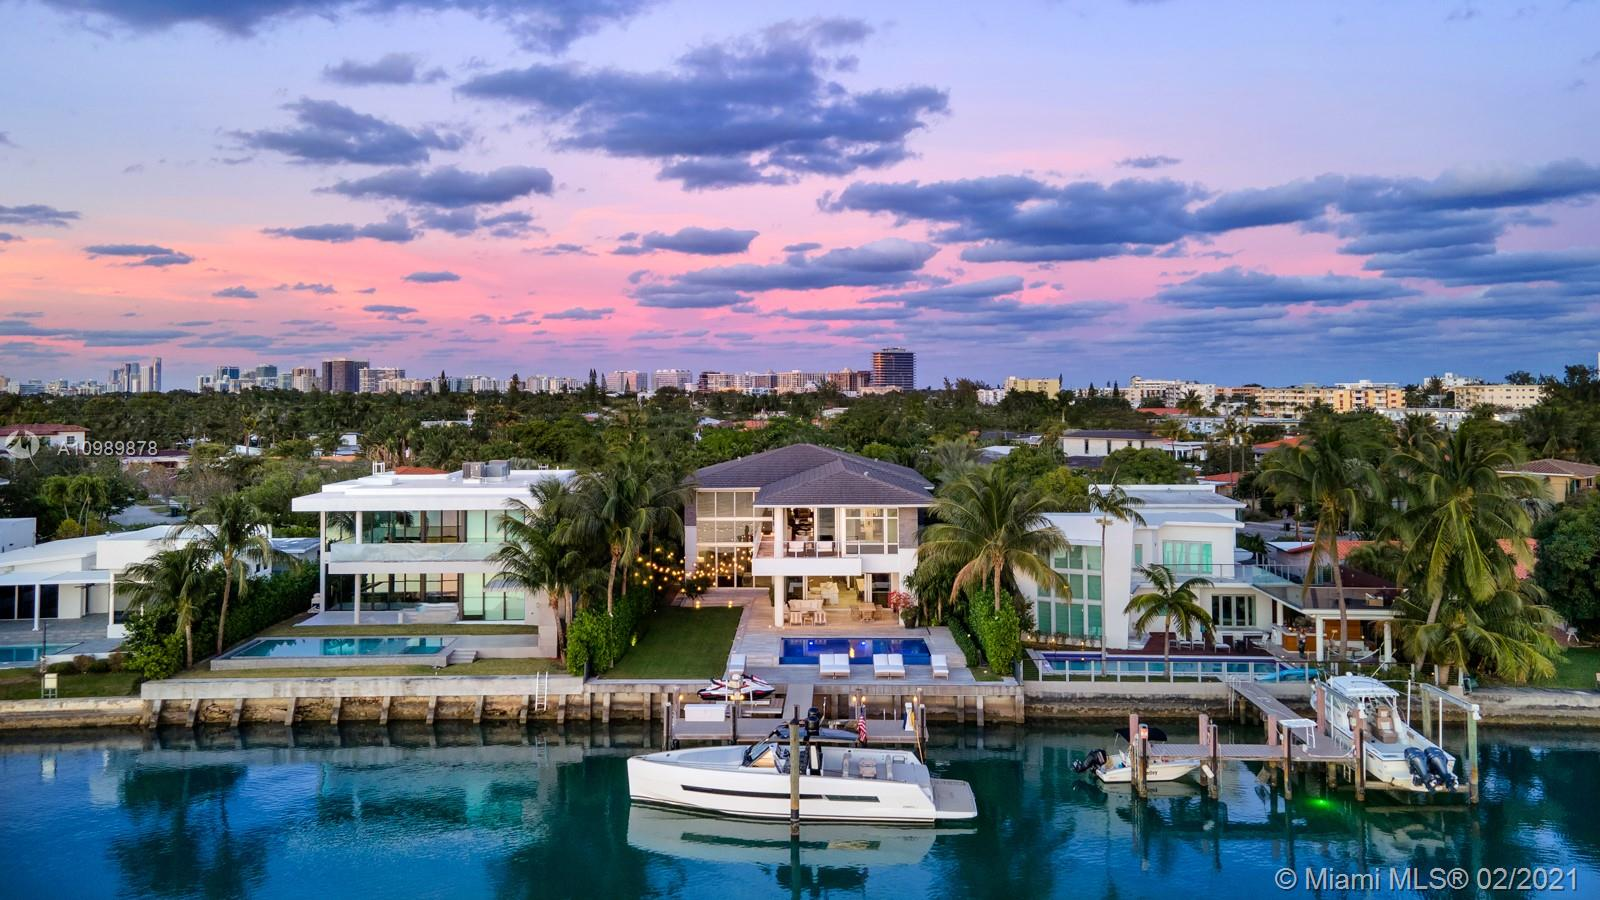 1220 S Biscayne Point Rd  For Sale A10989878, FL